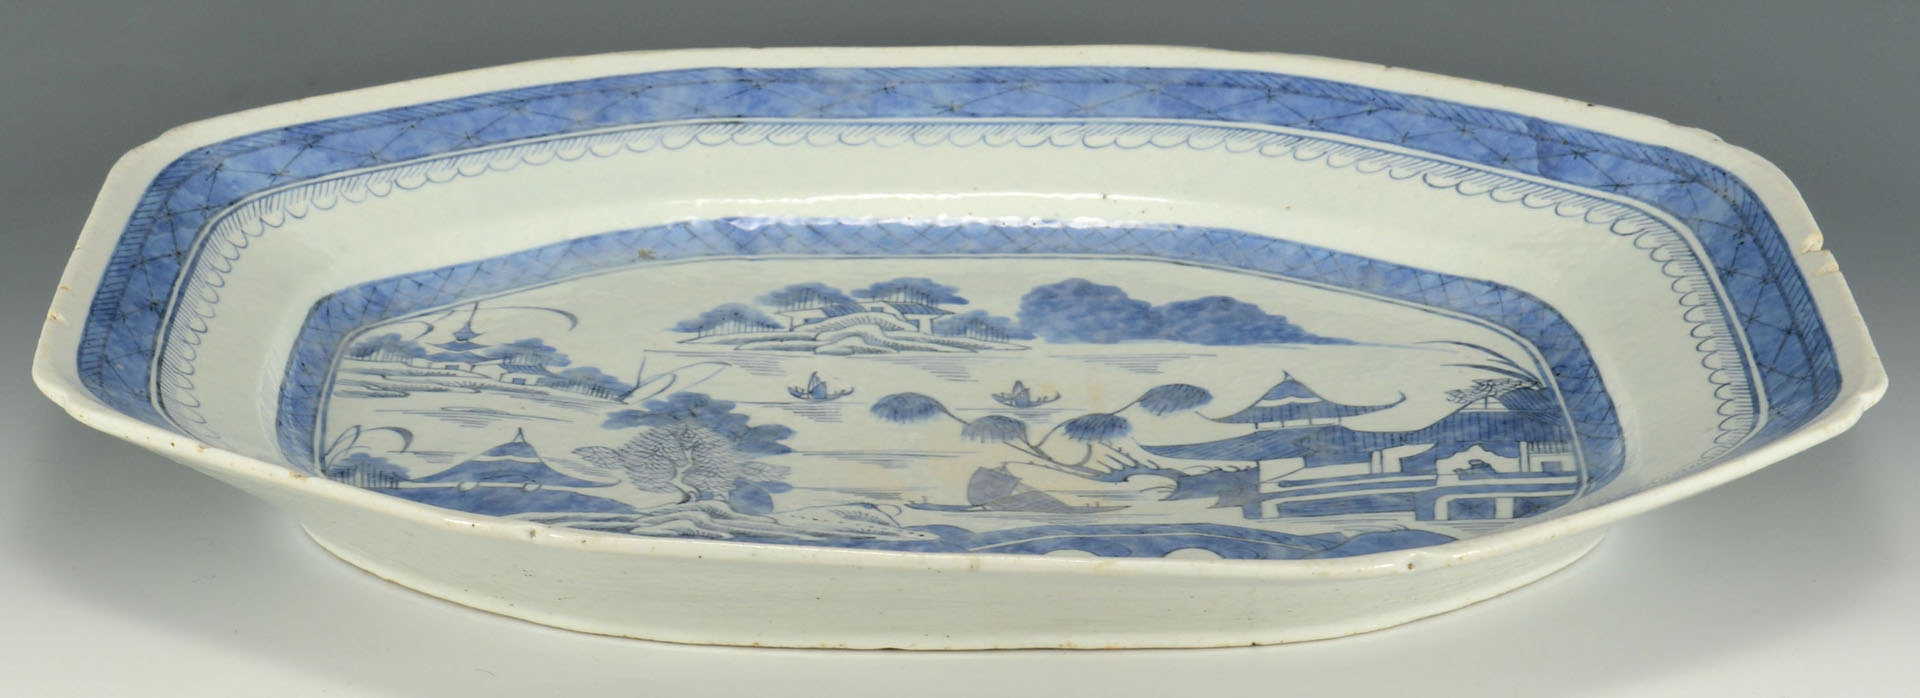 Lot 675: Blue and white Canton porcelain platter